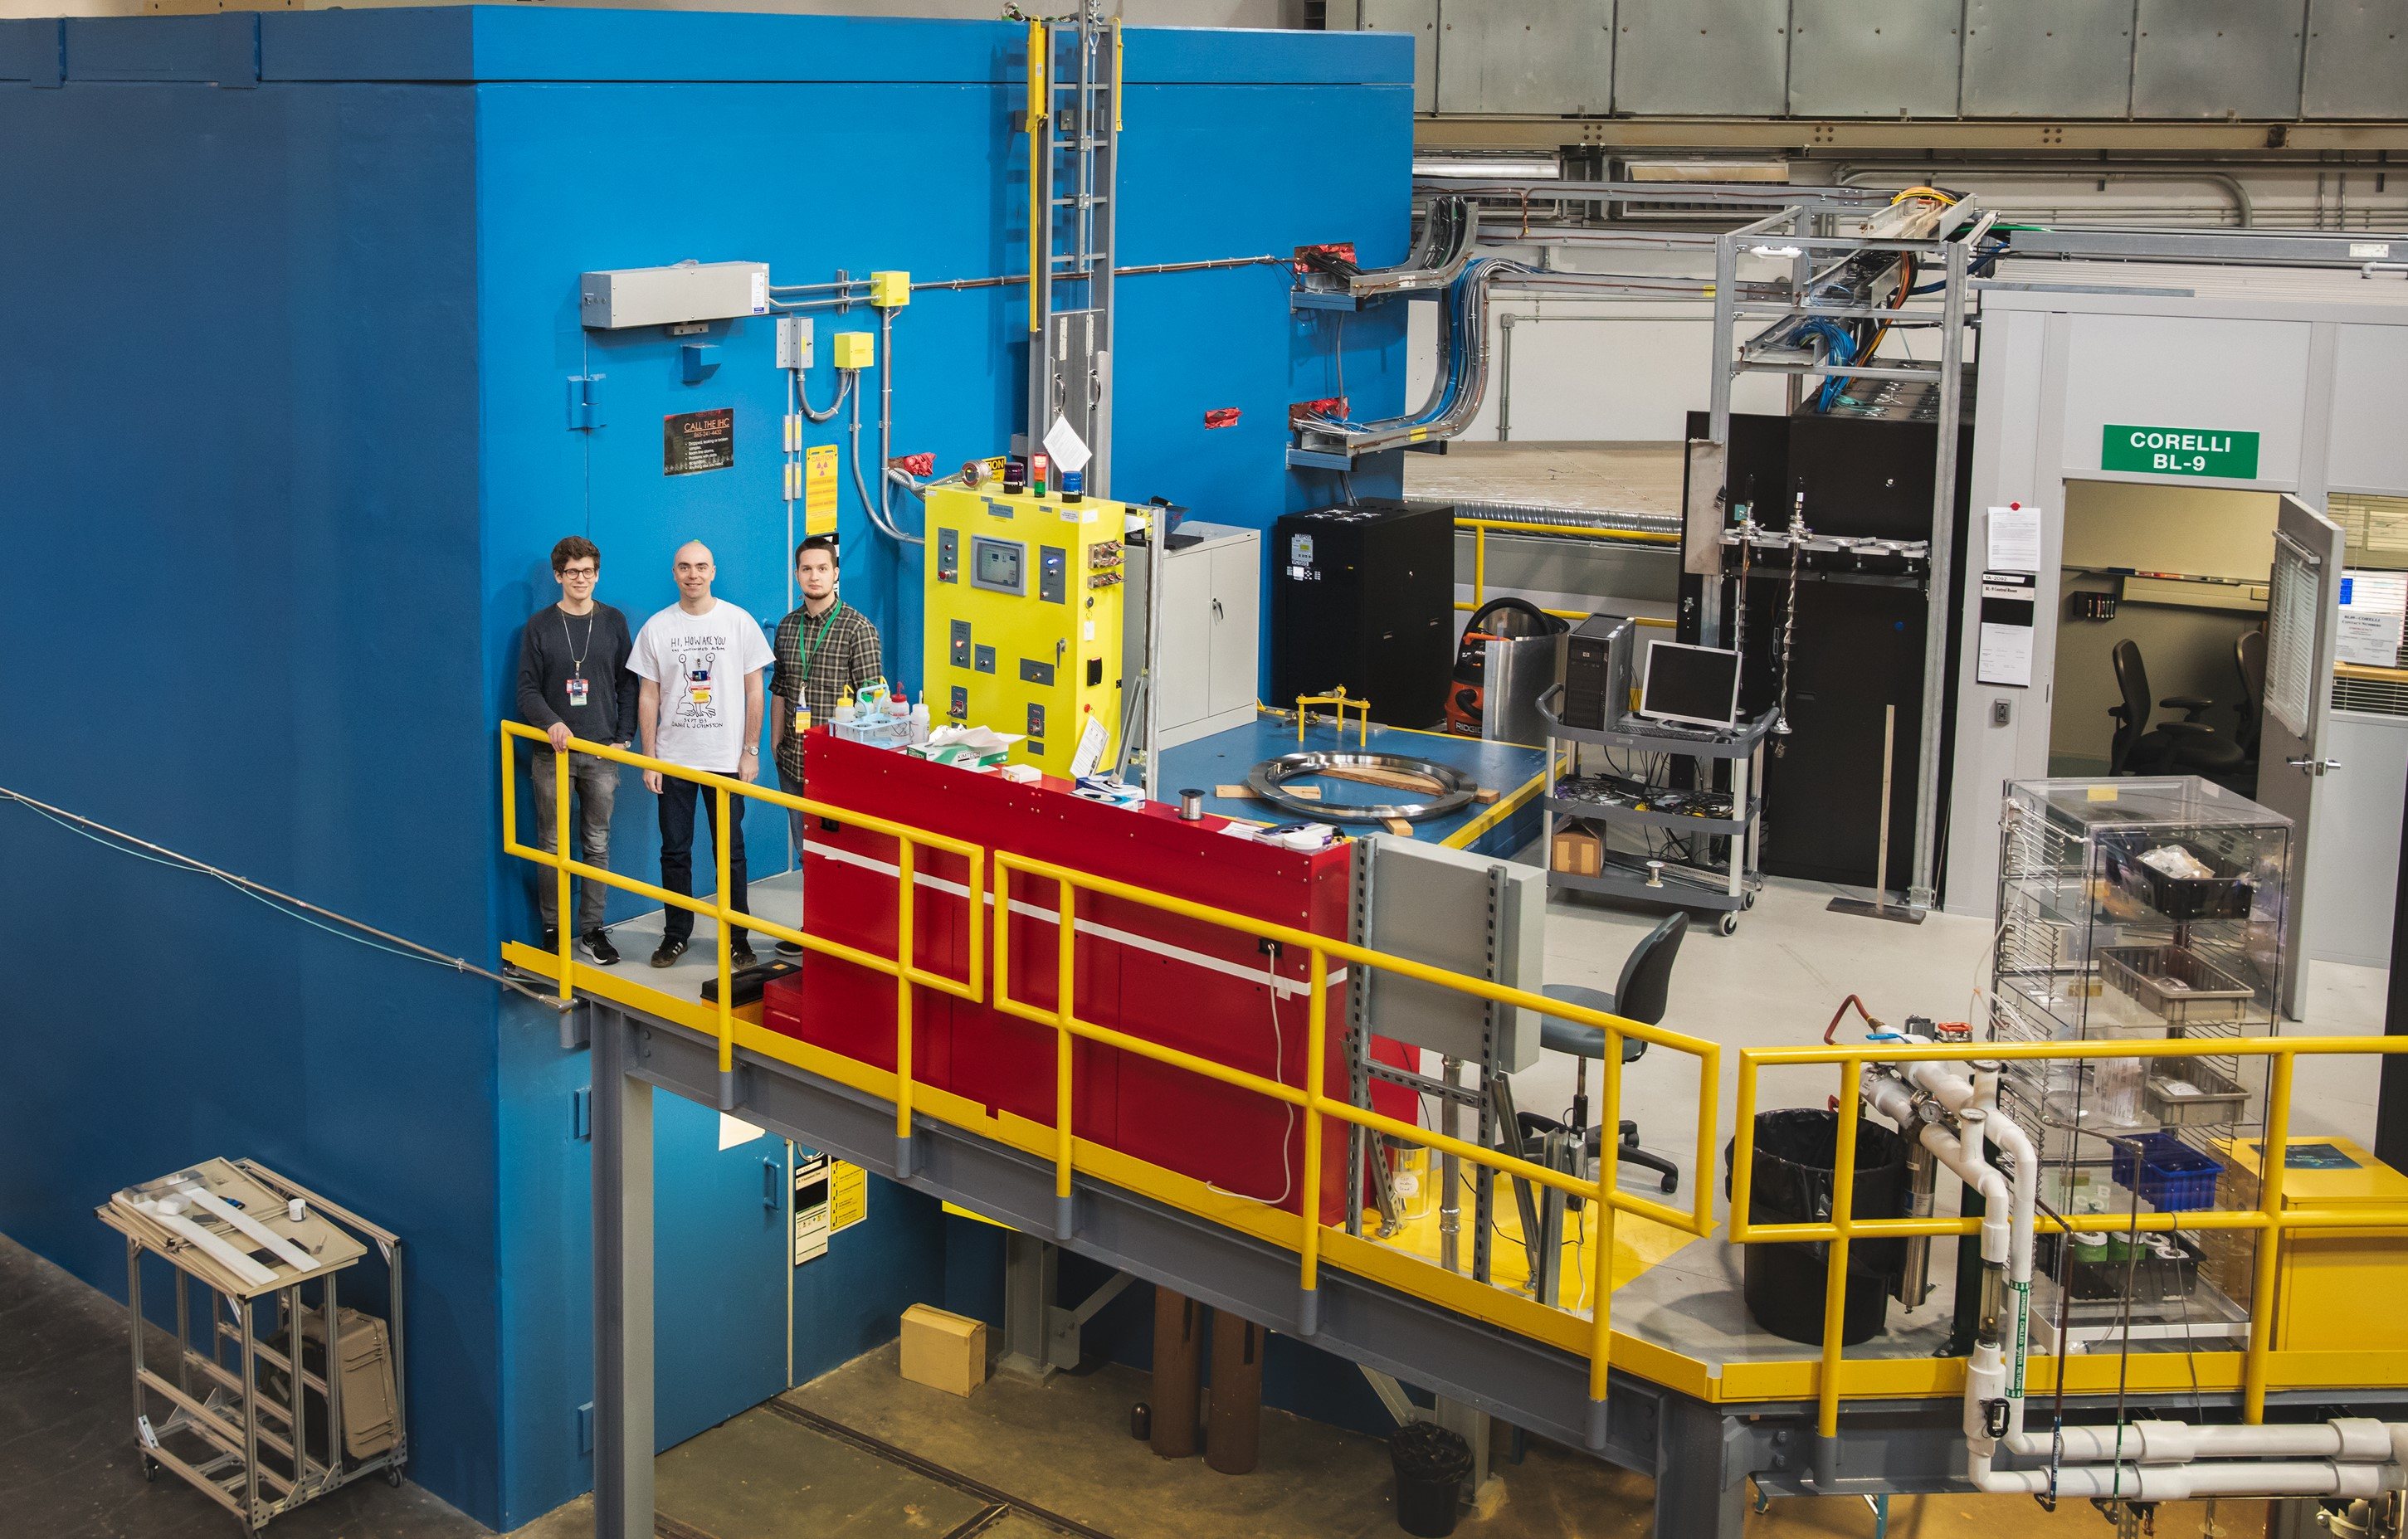 The research team, (left) Kristoffer Holm, Nikolaj Roth, and Emil Klahn, stands next to the CORELLI neutron scattering instrument at ORNL's Spallation Neutron Source. (Credit: ORNL/Genevieve Martin)